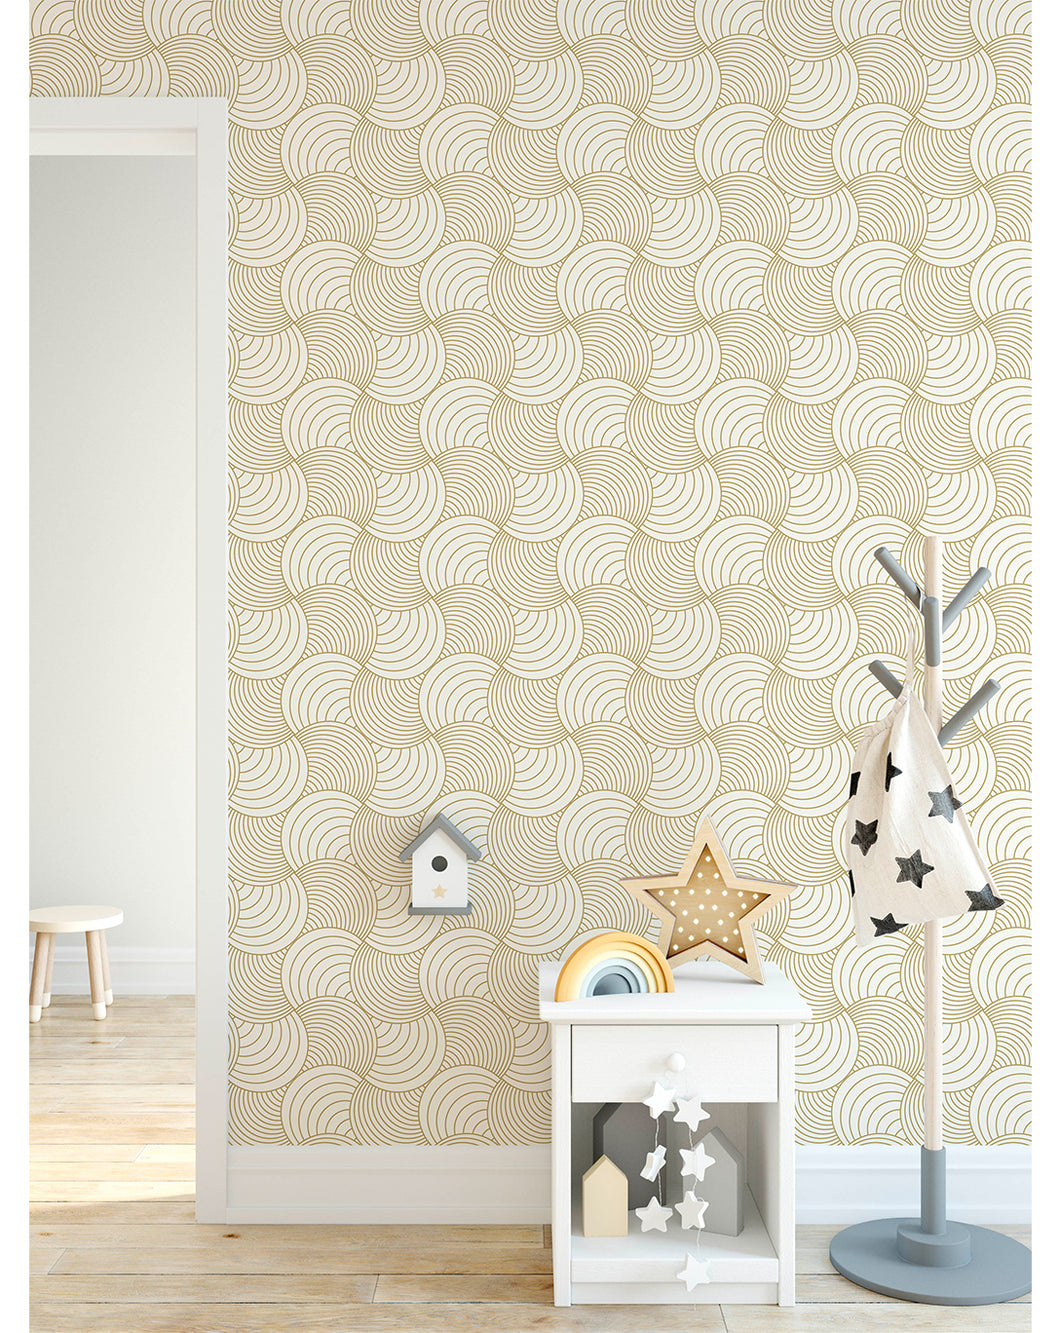 Abstract Gold Stripe Wave Removable Wallpaper Self Adhesive Geometric Wall Paper Vinyl Peel And